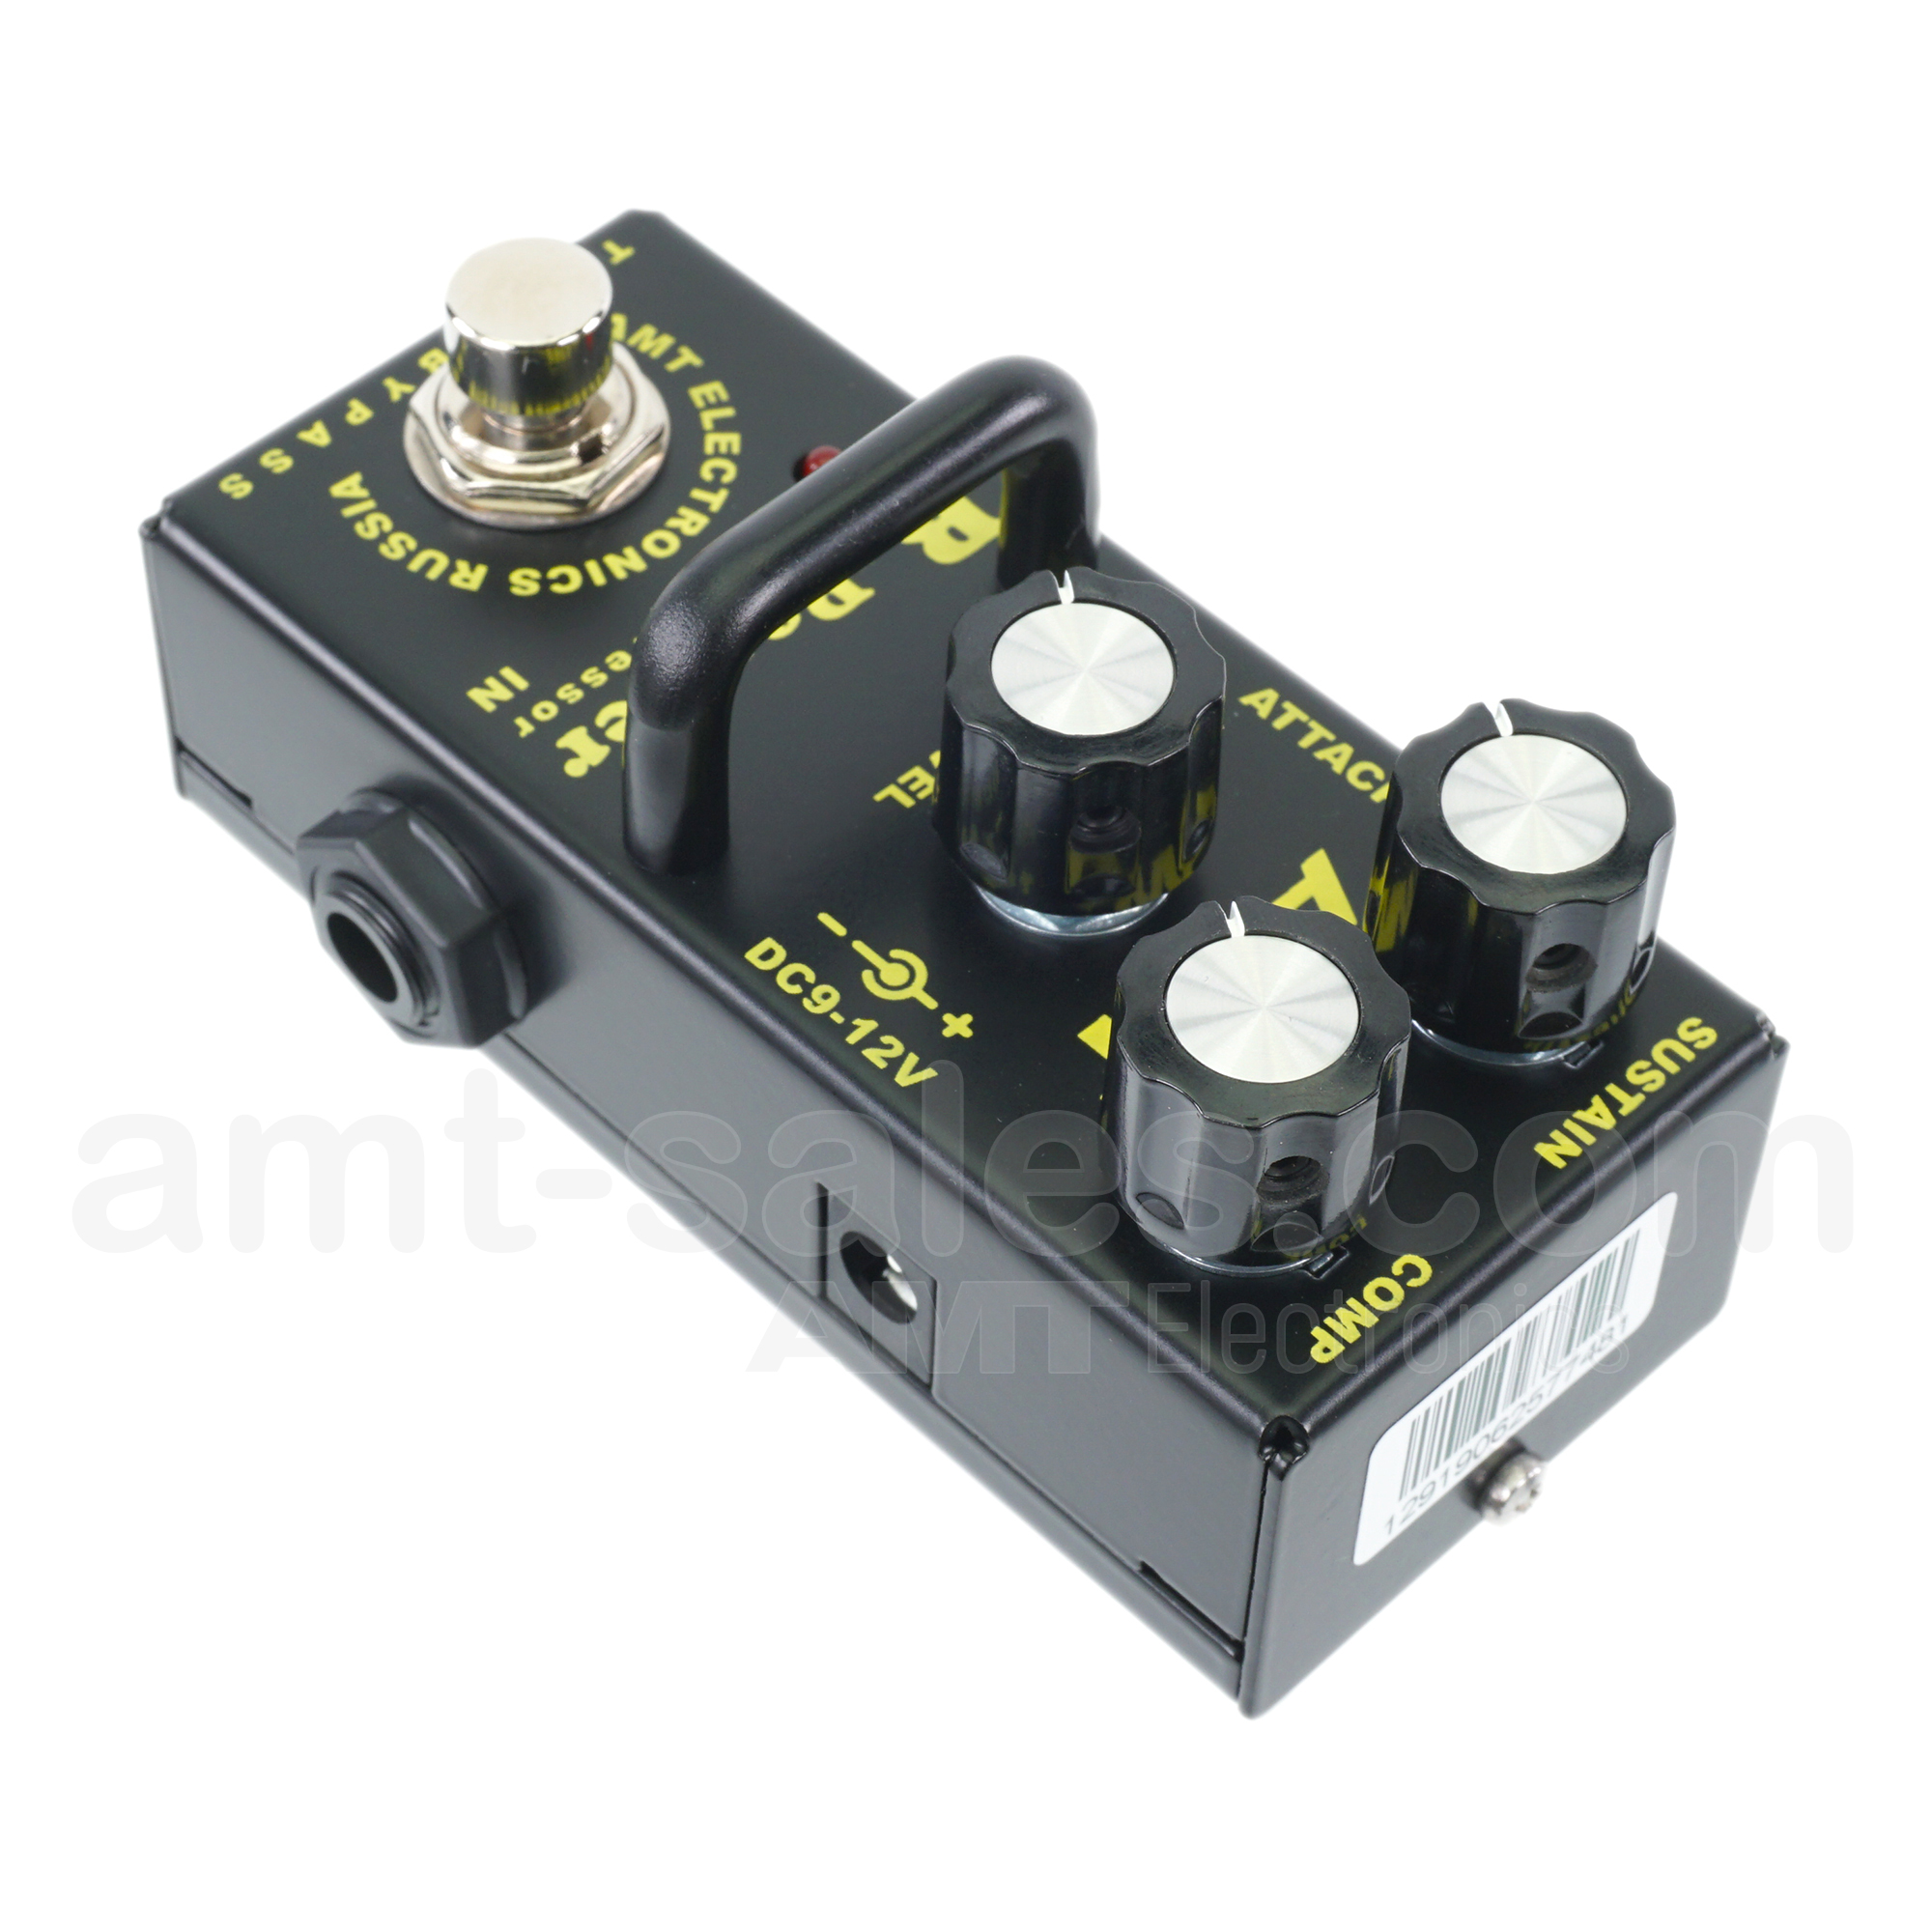 AMT B-Packer - optical compressor for bass